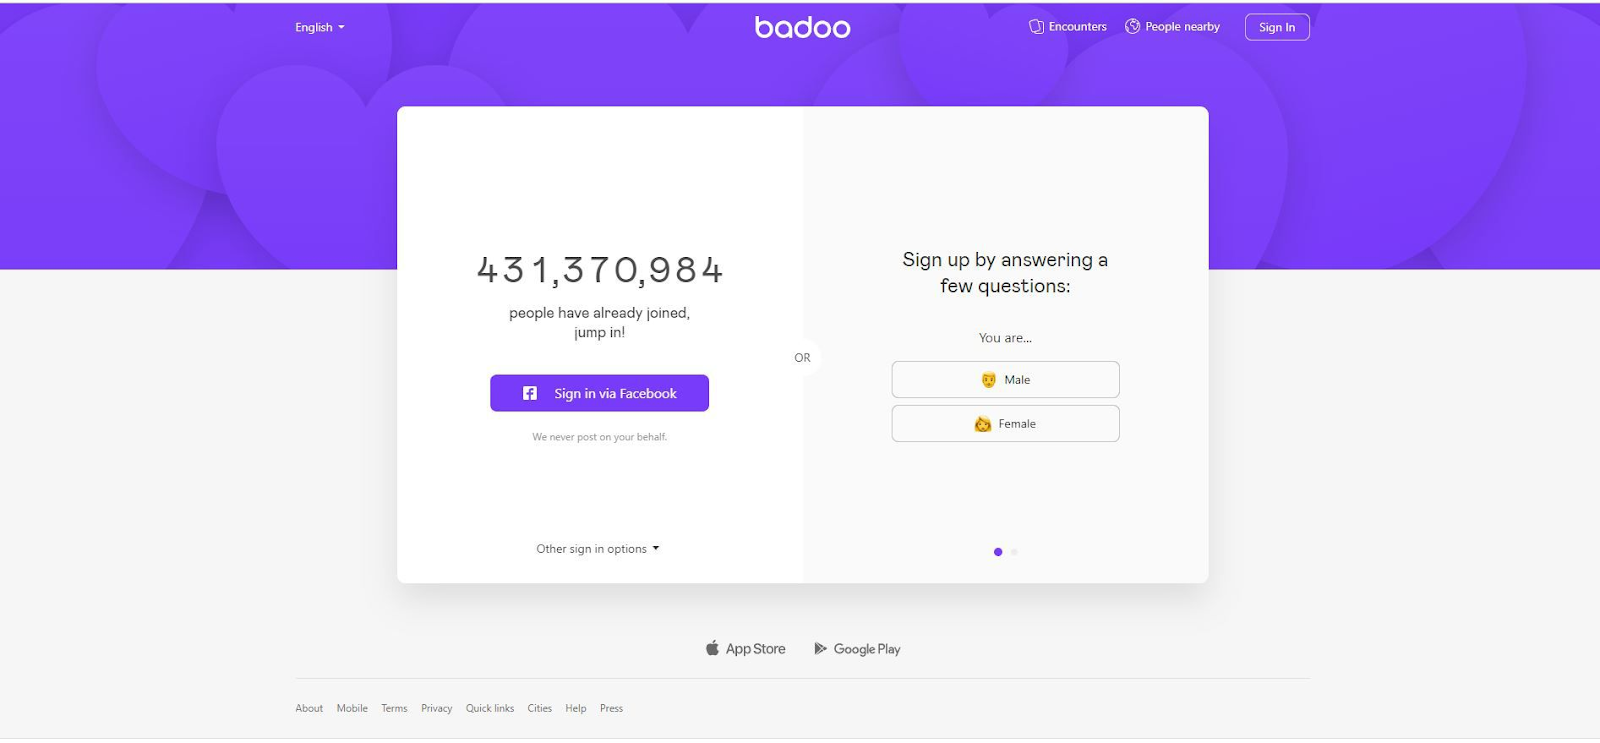 Badoo registration and login process